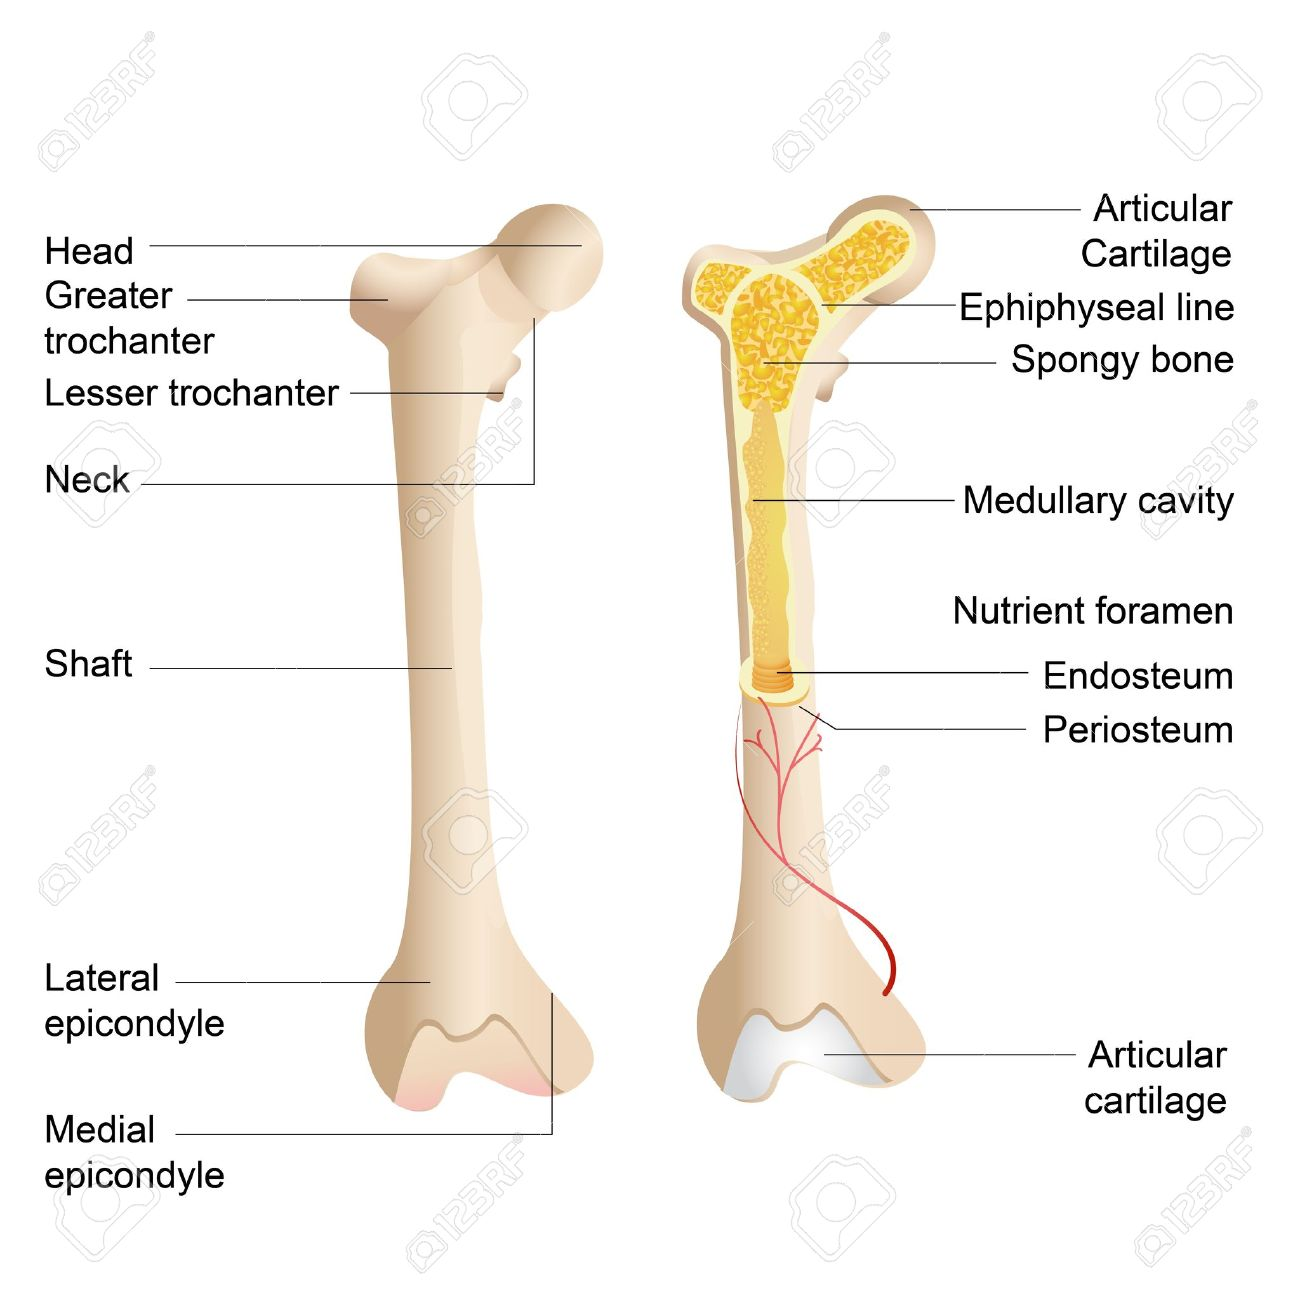 coxal bone diagram blank hockey rink structure clipart clipground